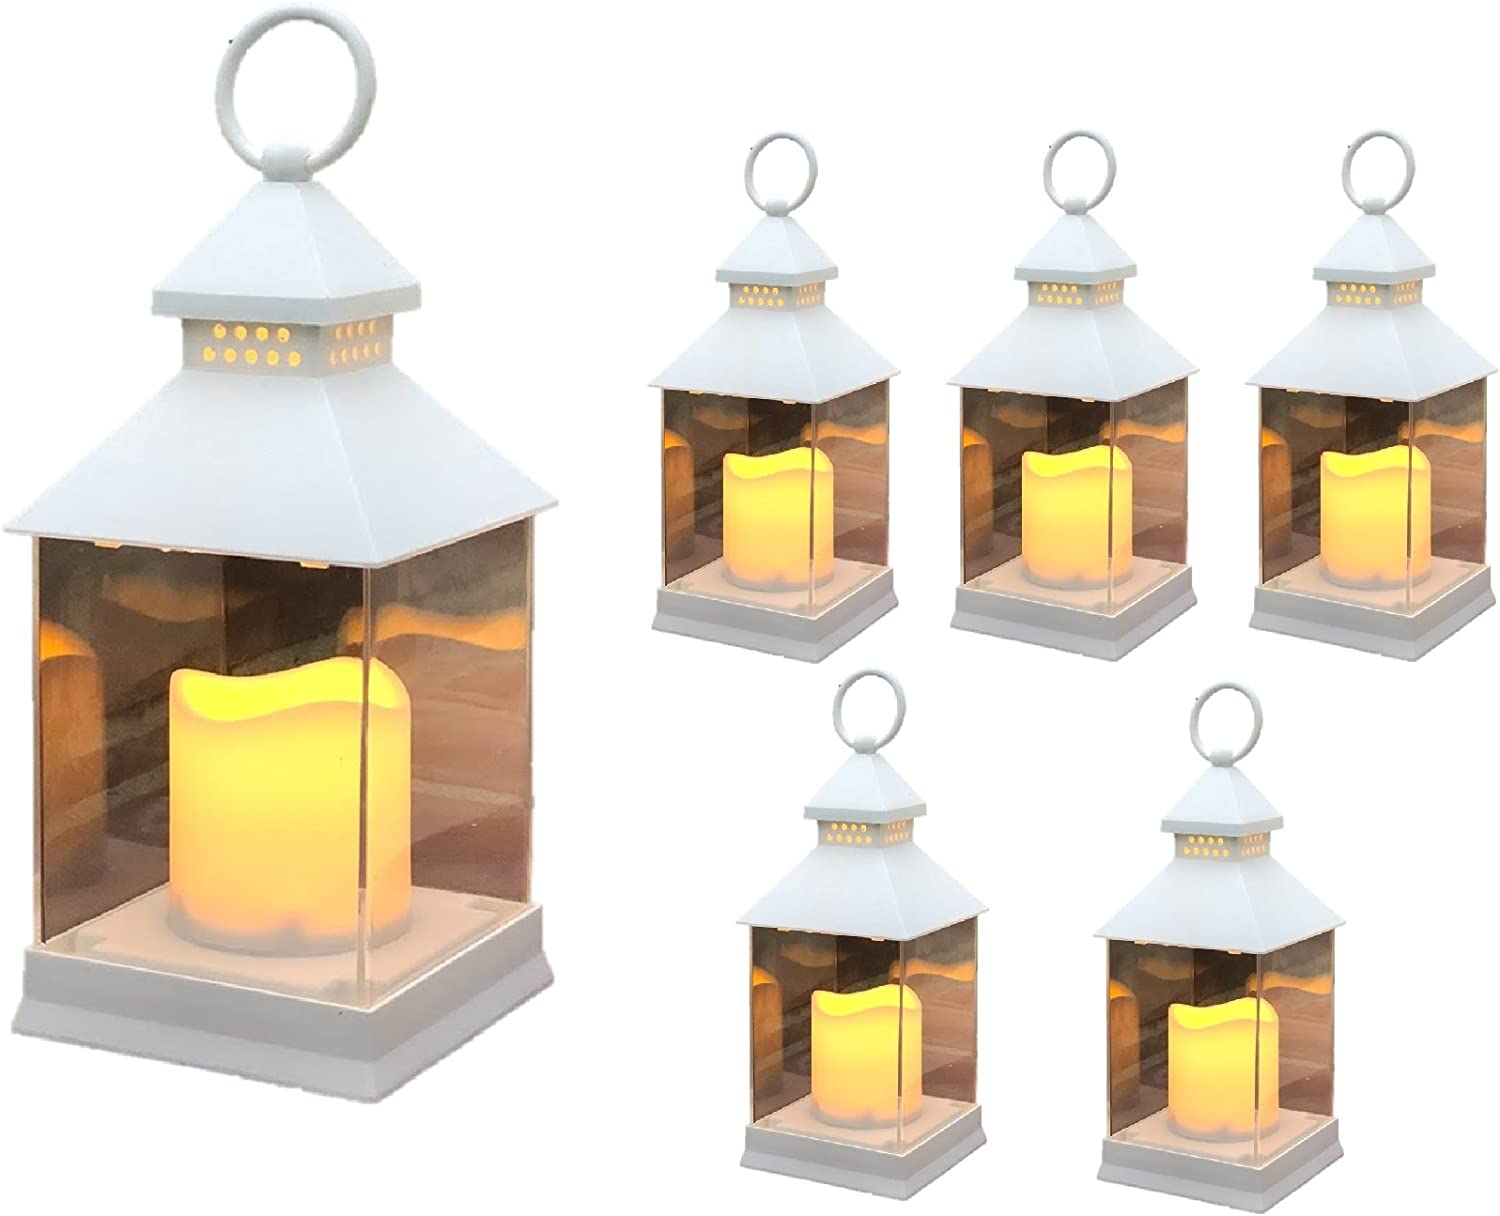 Just In Time for Spring {6 Pc Set} 10  Decorative Lanterns With Flameless LED Lighted Candle - 5 Hr Timer Modern Look Indoor Outdoor for Home, Garden, Patio, Party Lights, Weddings - White